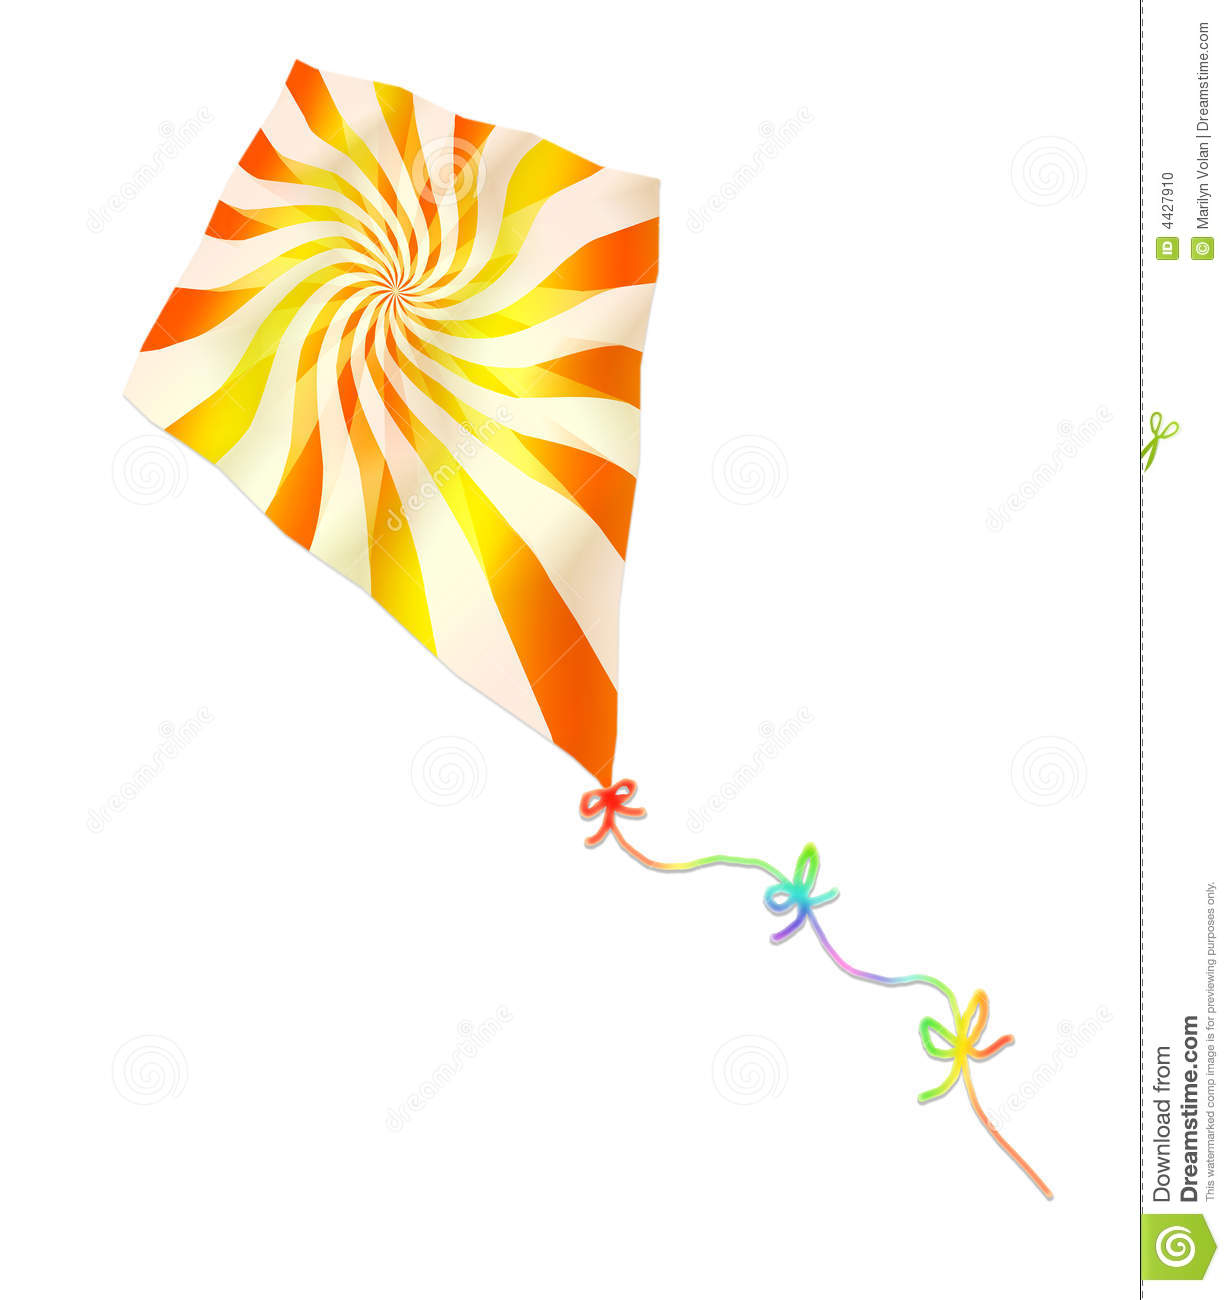 Illustration of a flying kite with a twirling orange and yellow design ...